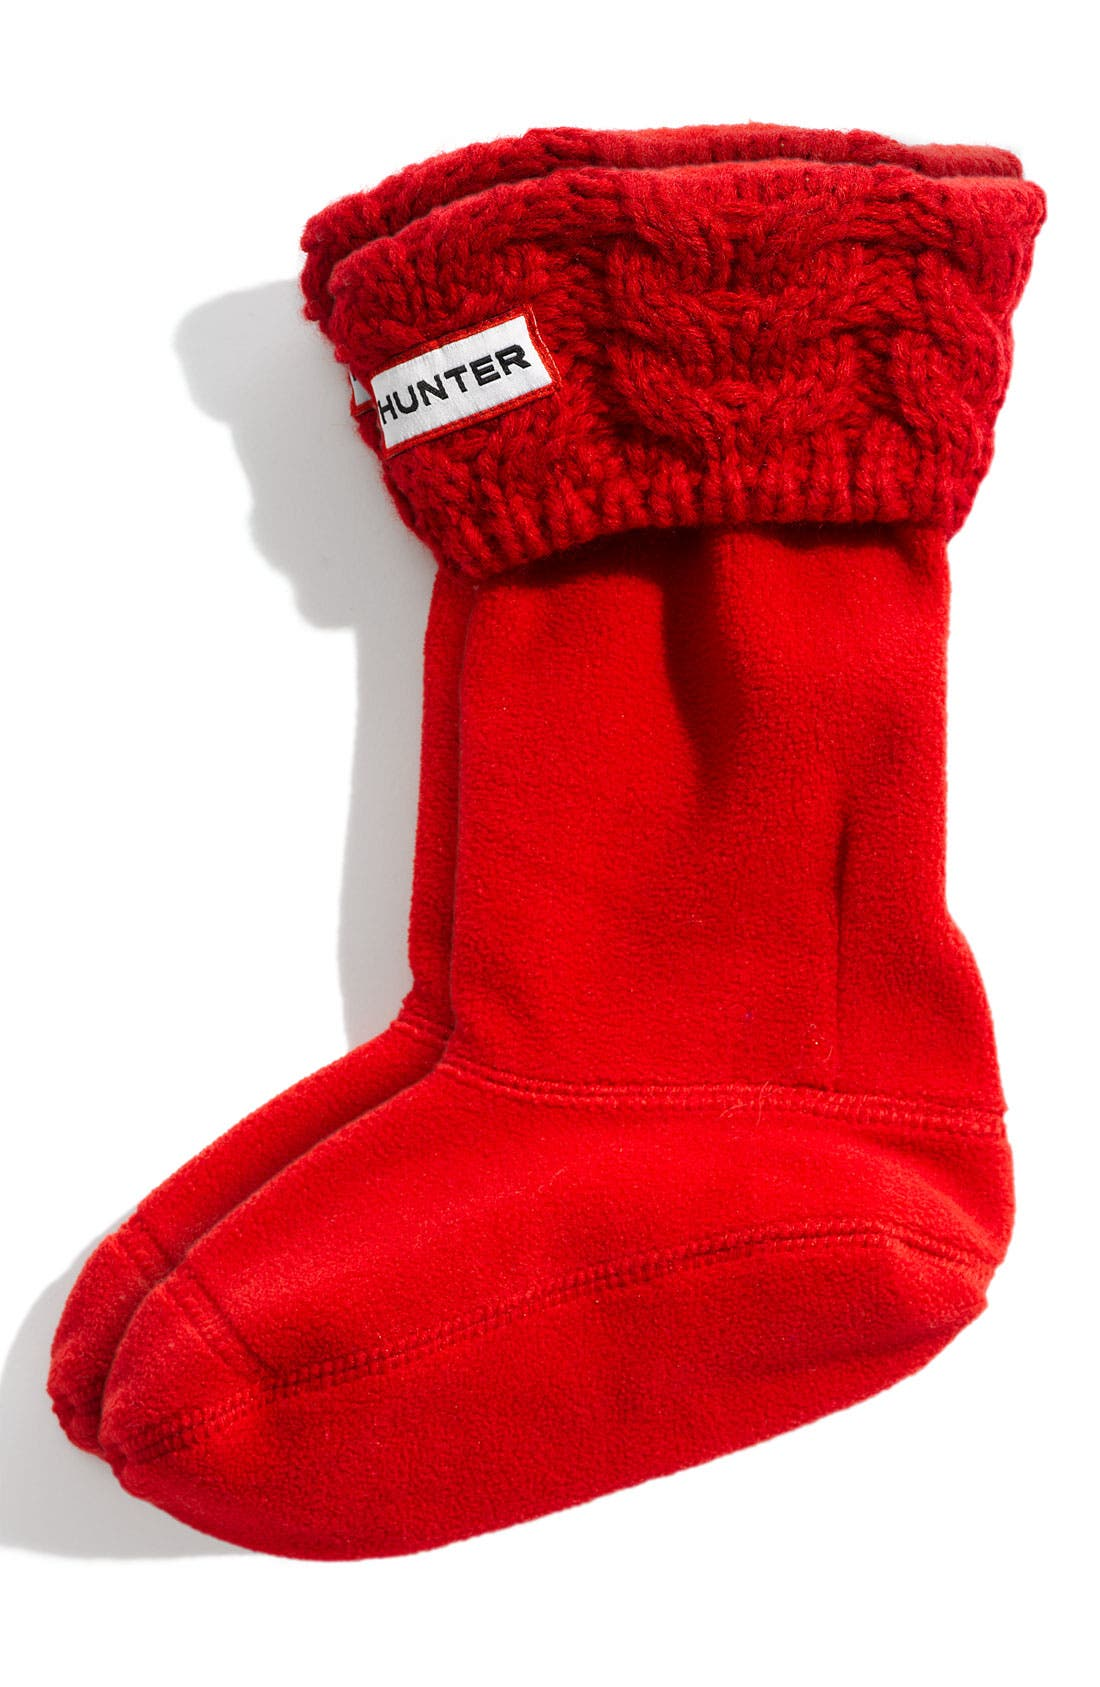 Alternate Image 1 Selected - Hunter 'Chunky' Cabled Cuff Socks (Toddler, Little Kid & Big Kid)